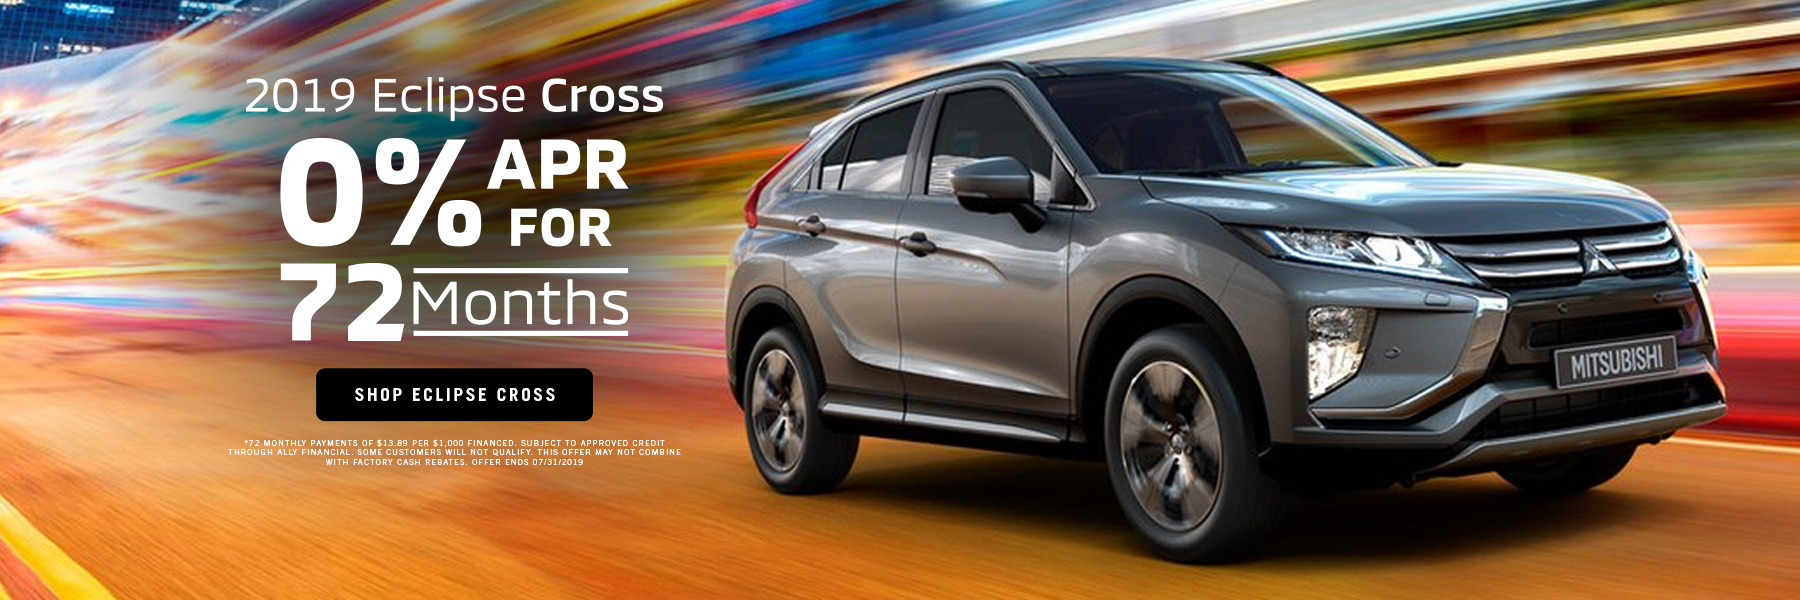 0% APR for 72mo Eclipse Cross